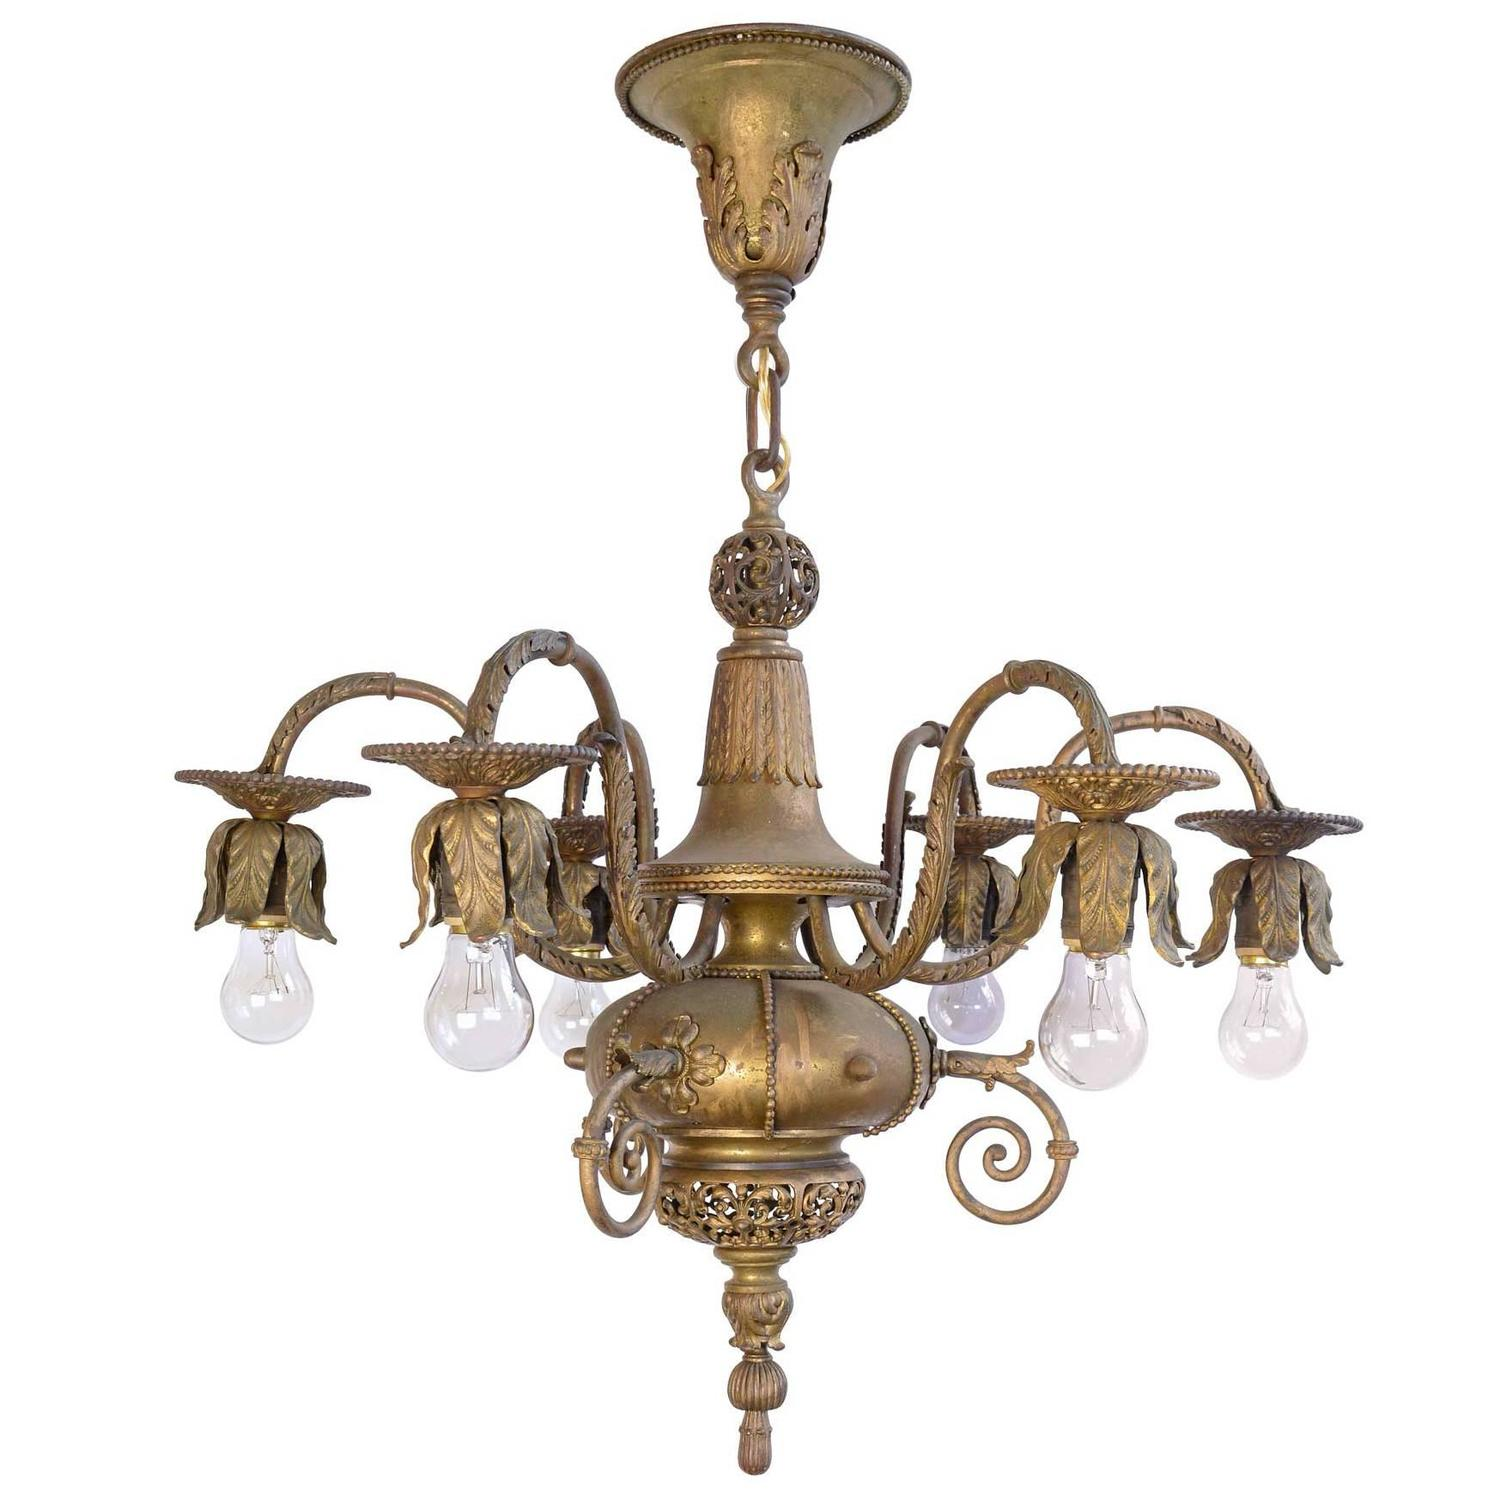 Late 1890s Electrified Hand Wrought Iron Chandelier with Eight